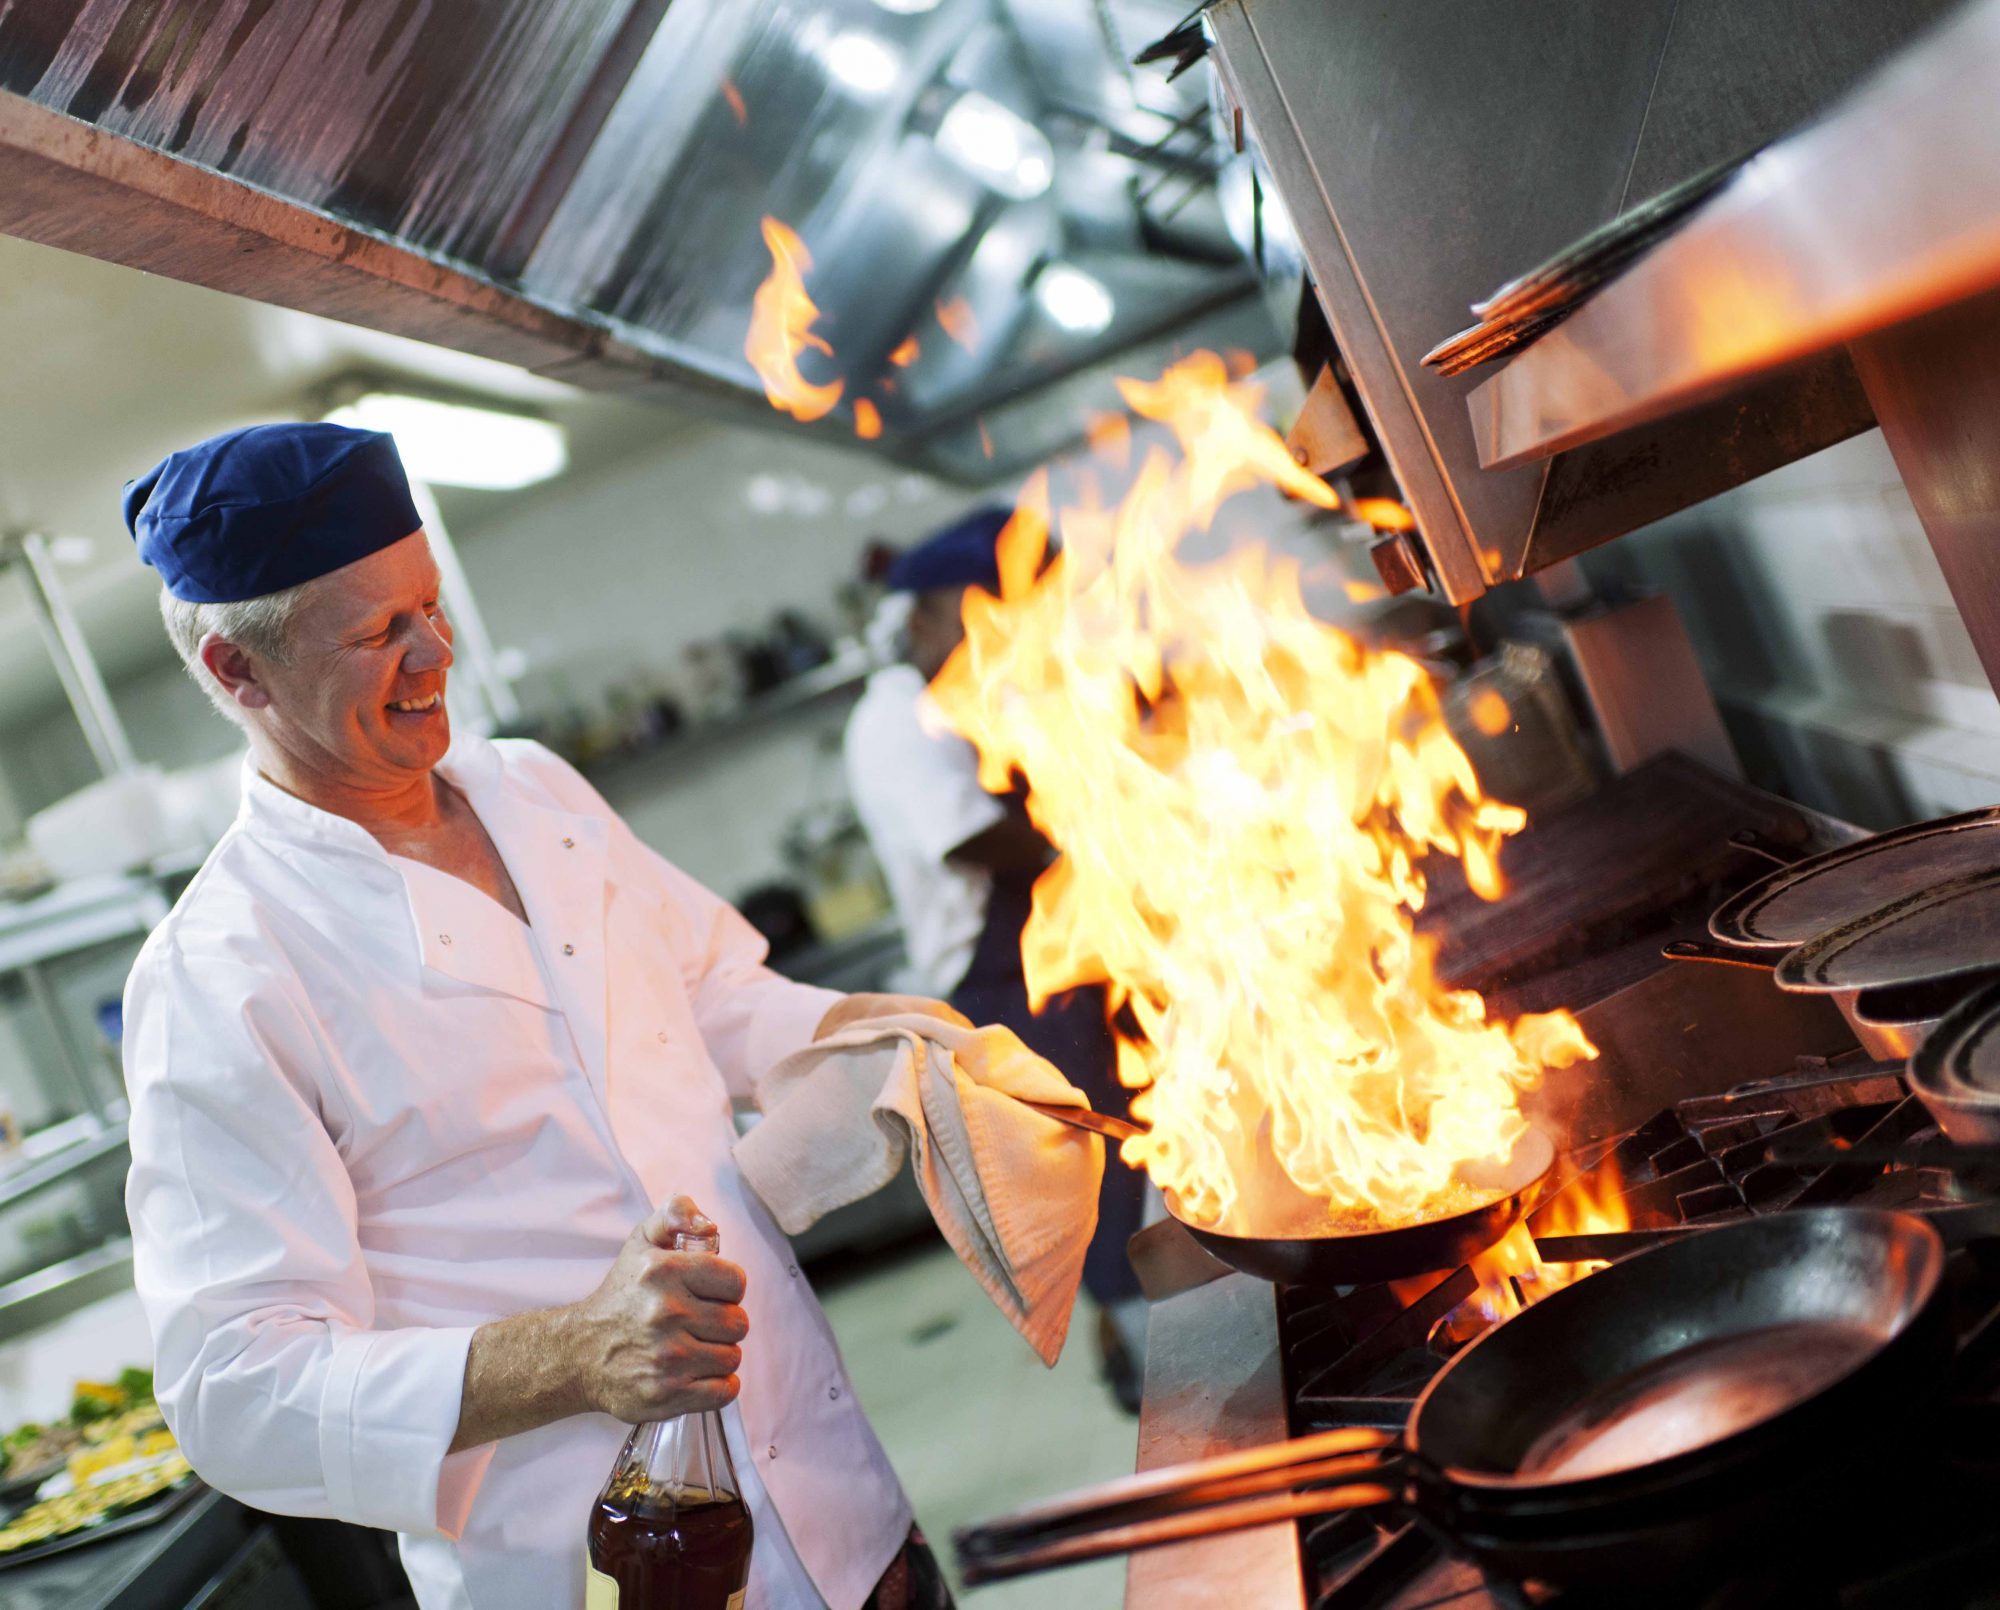 A chef in a commercial kitchen.